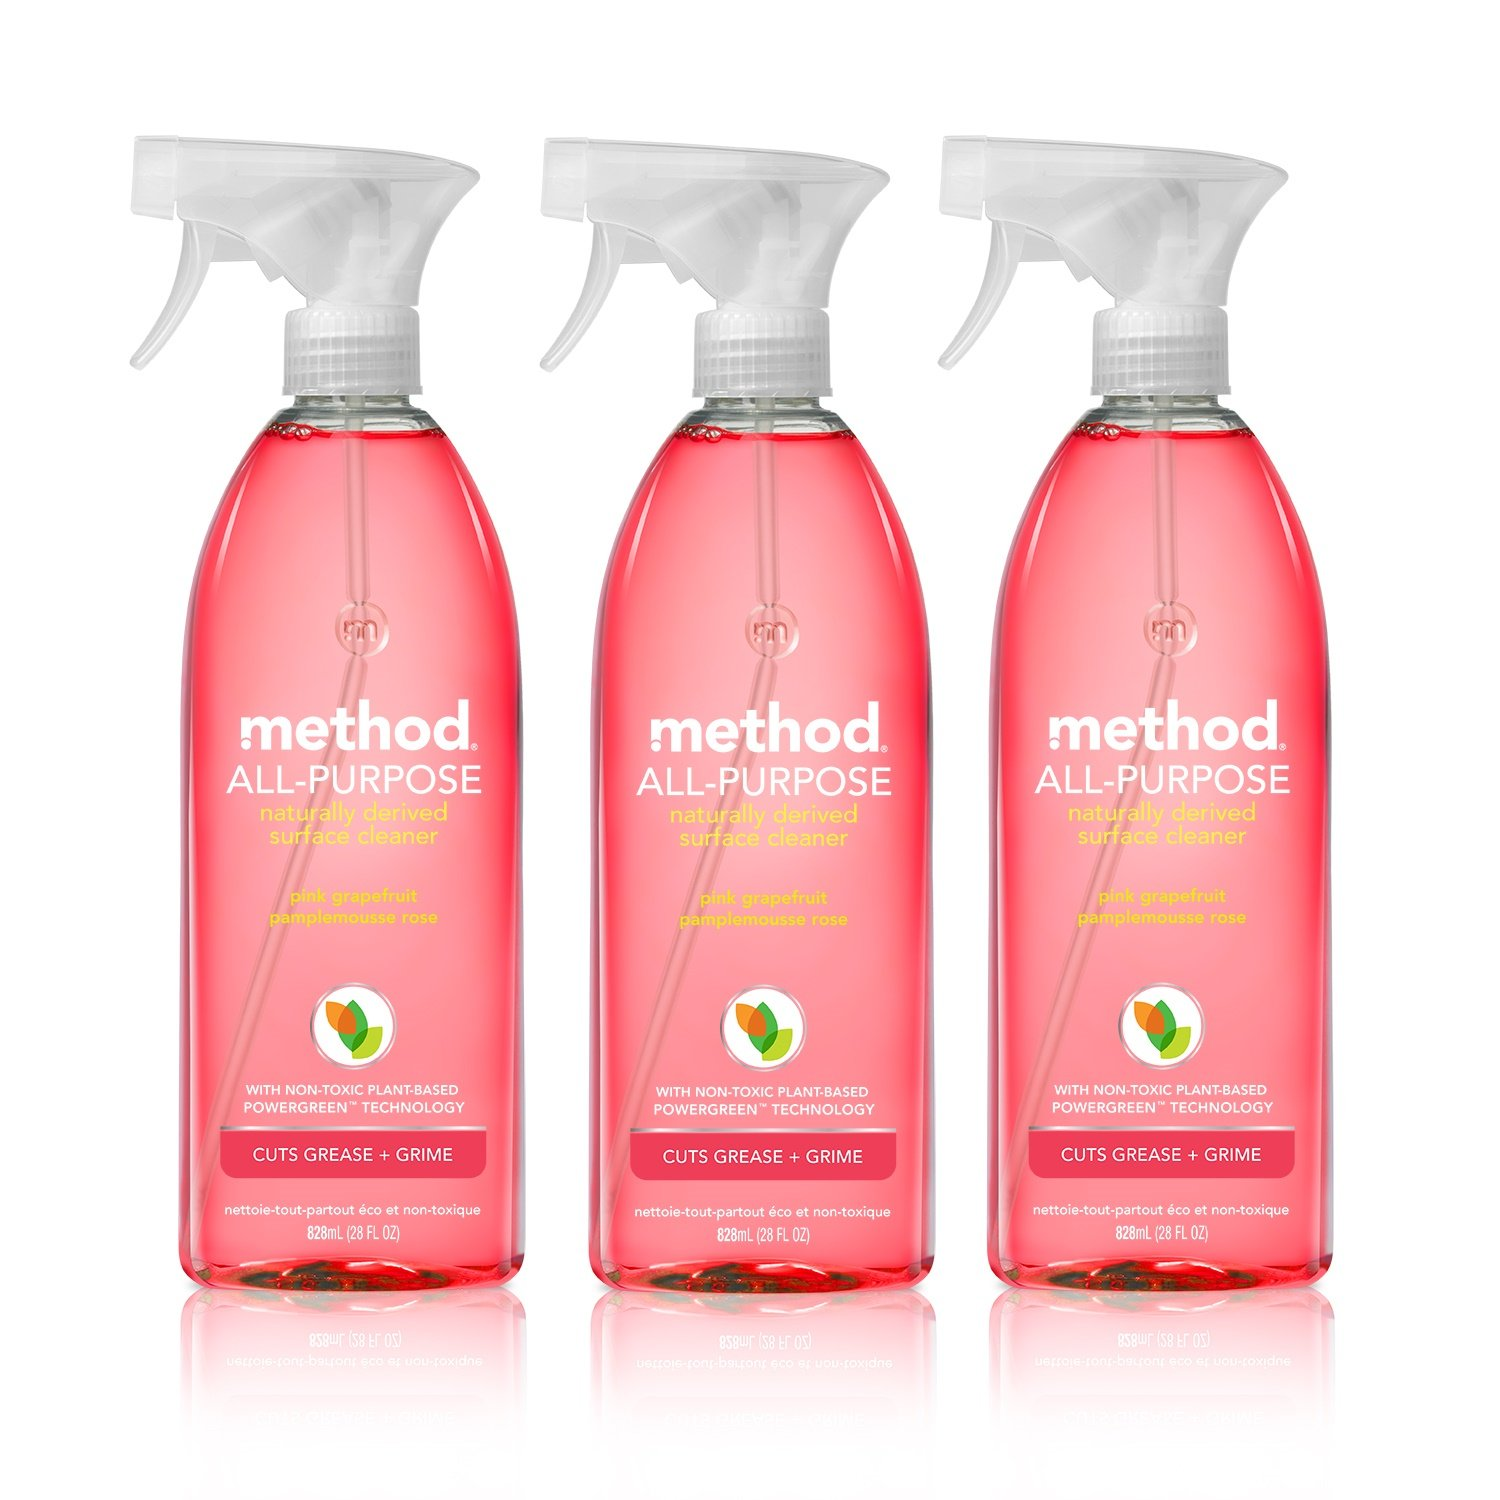 Amazoncom Method Allpurpose Natural Surface Cleaner Pink - Method bathroom cleaner ingredients